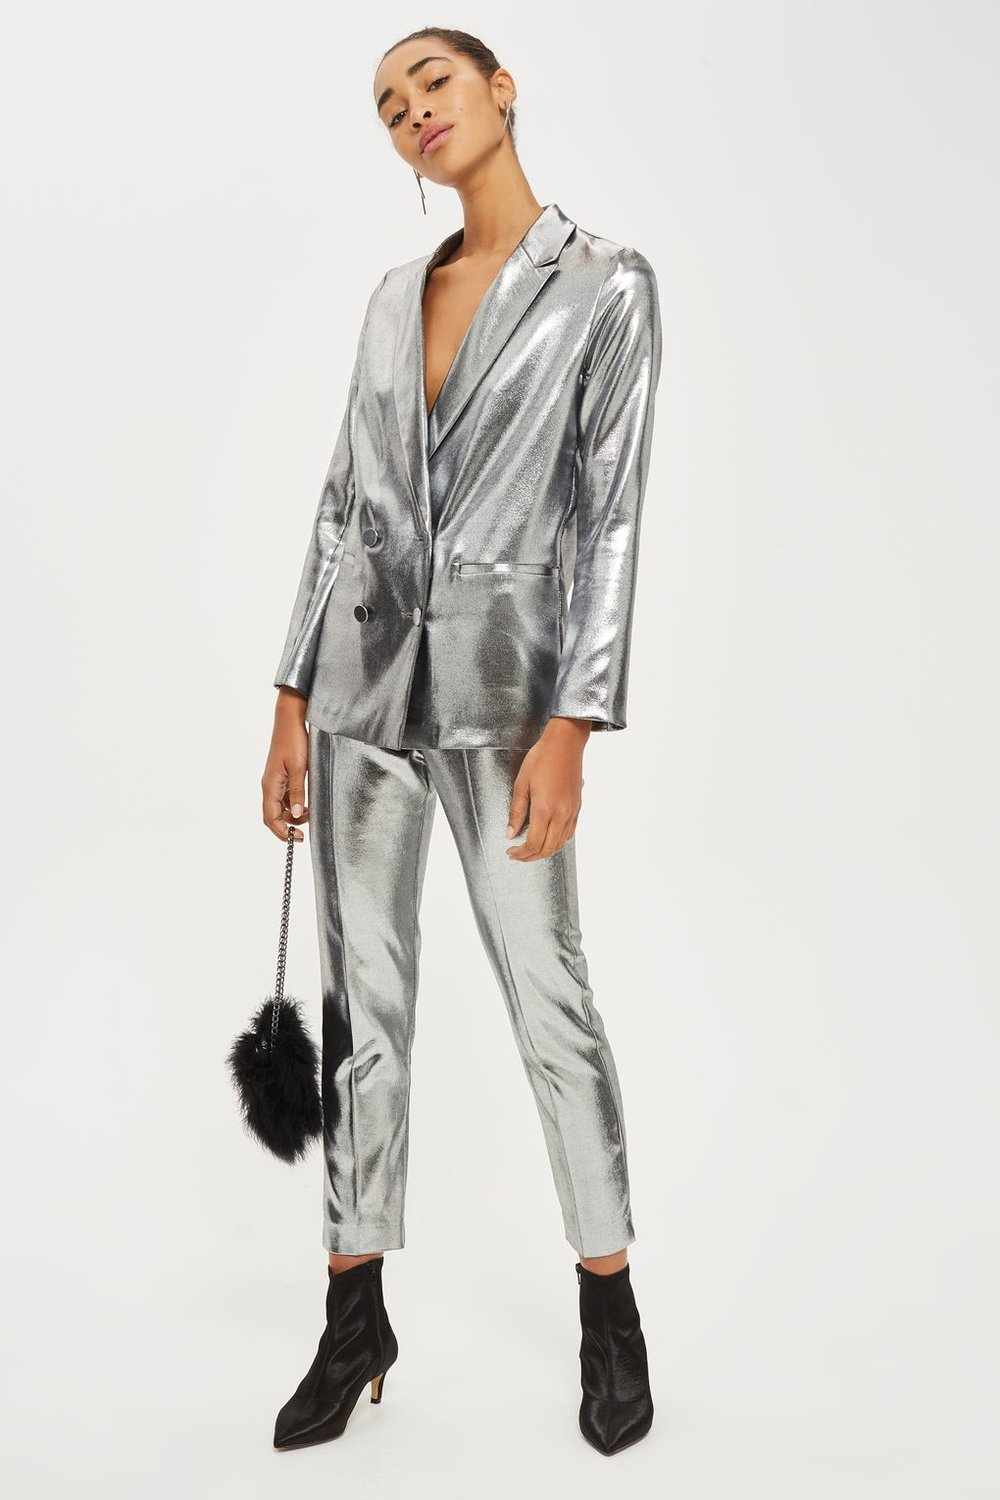 Metallic suit - topshop £100